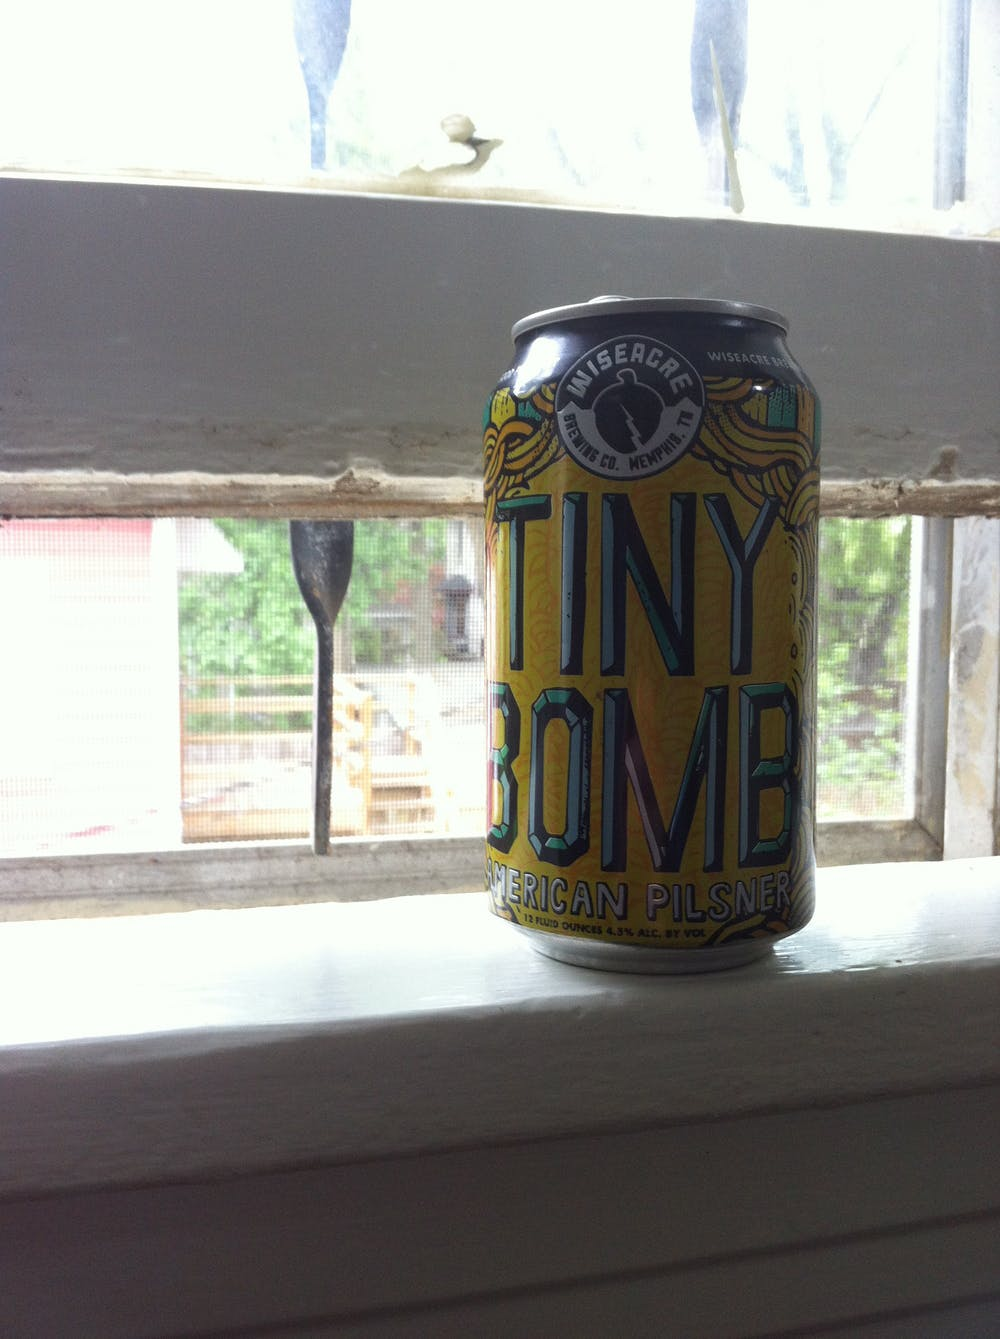 Close-up photo of a beer can with the words Tiny Bomb displayed across the front